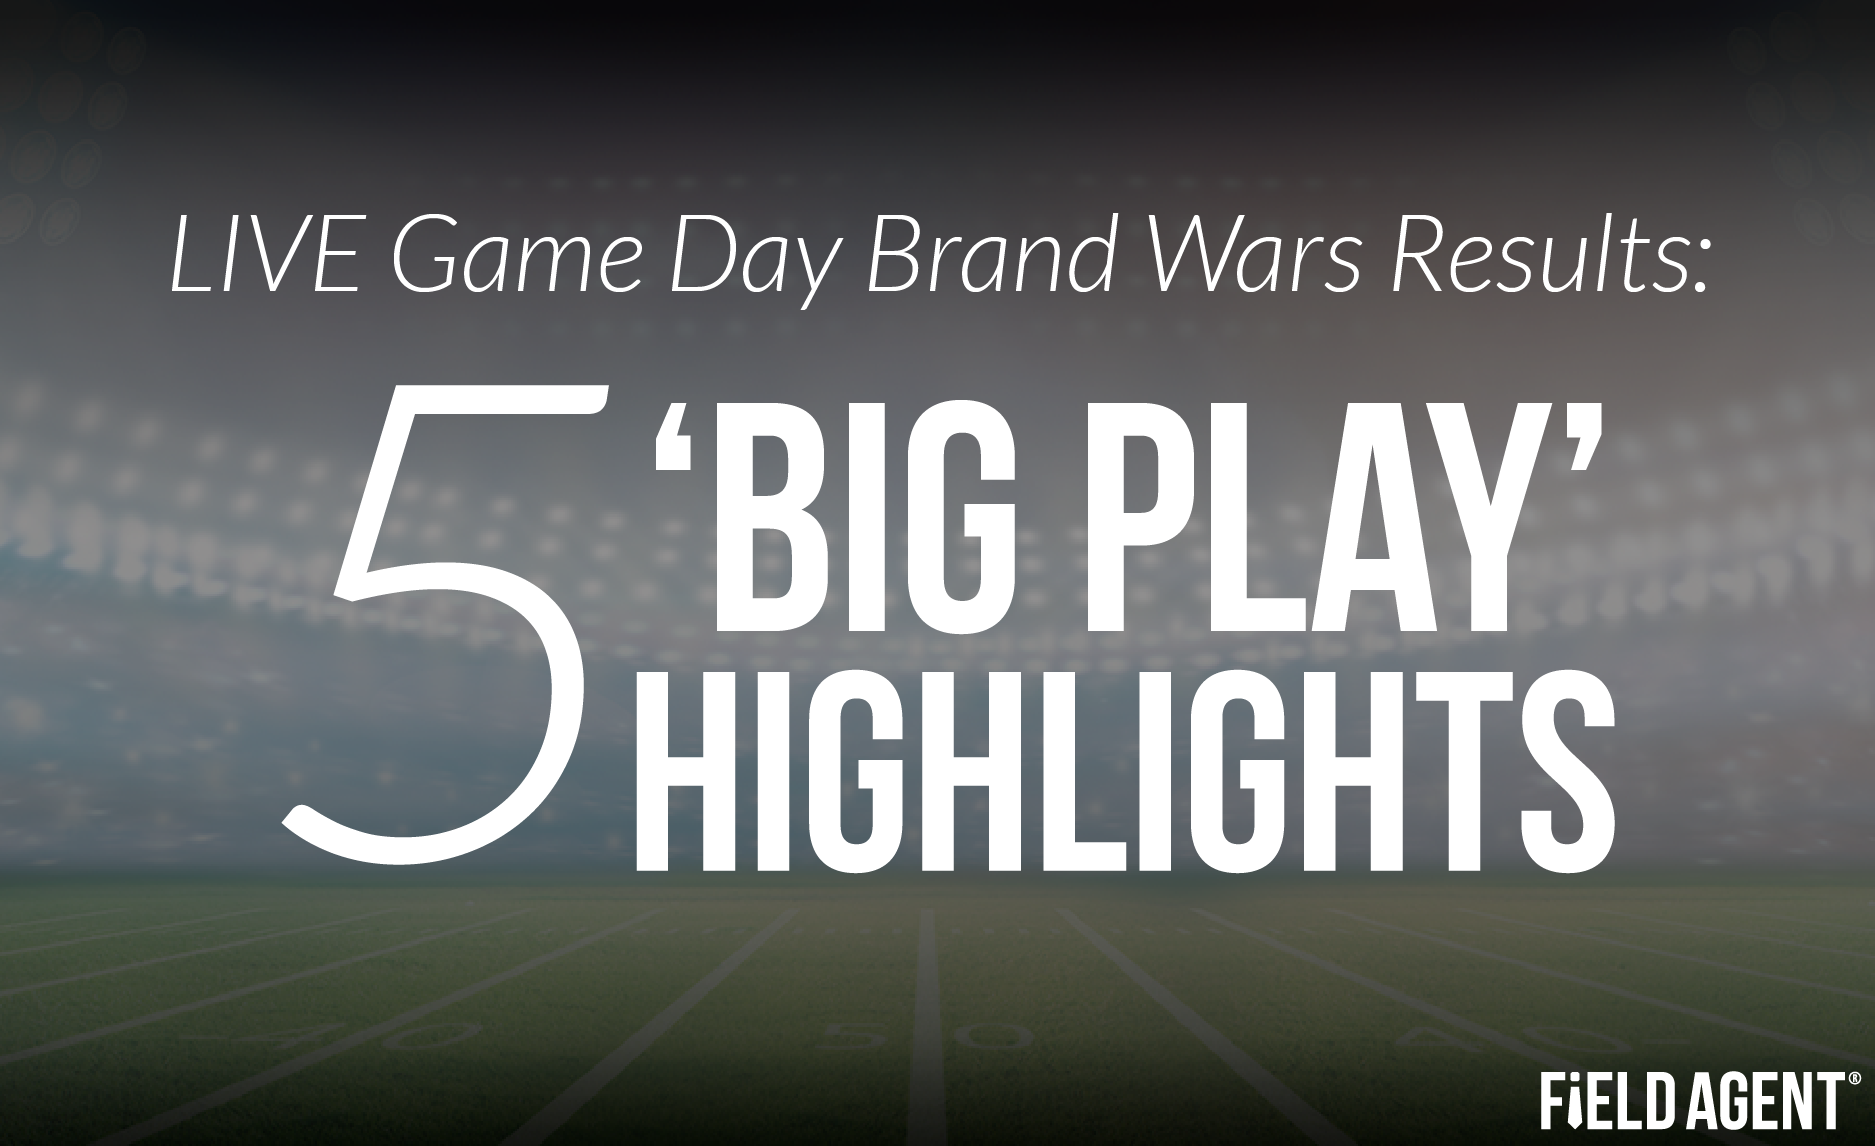 LIVE Game Day Brand Wars Results: 5 'Big Play' Highlights